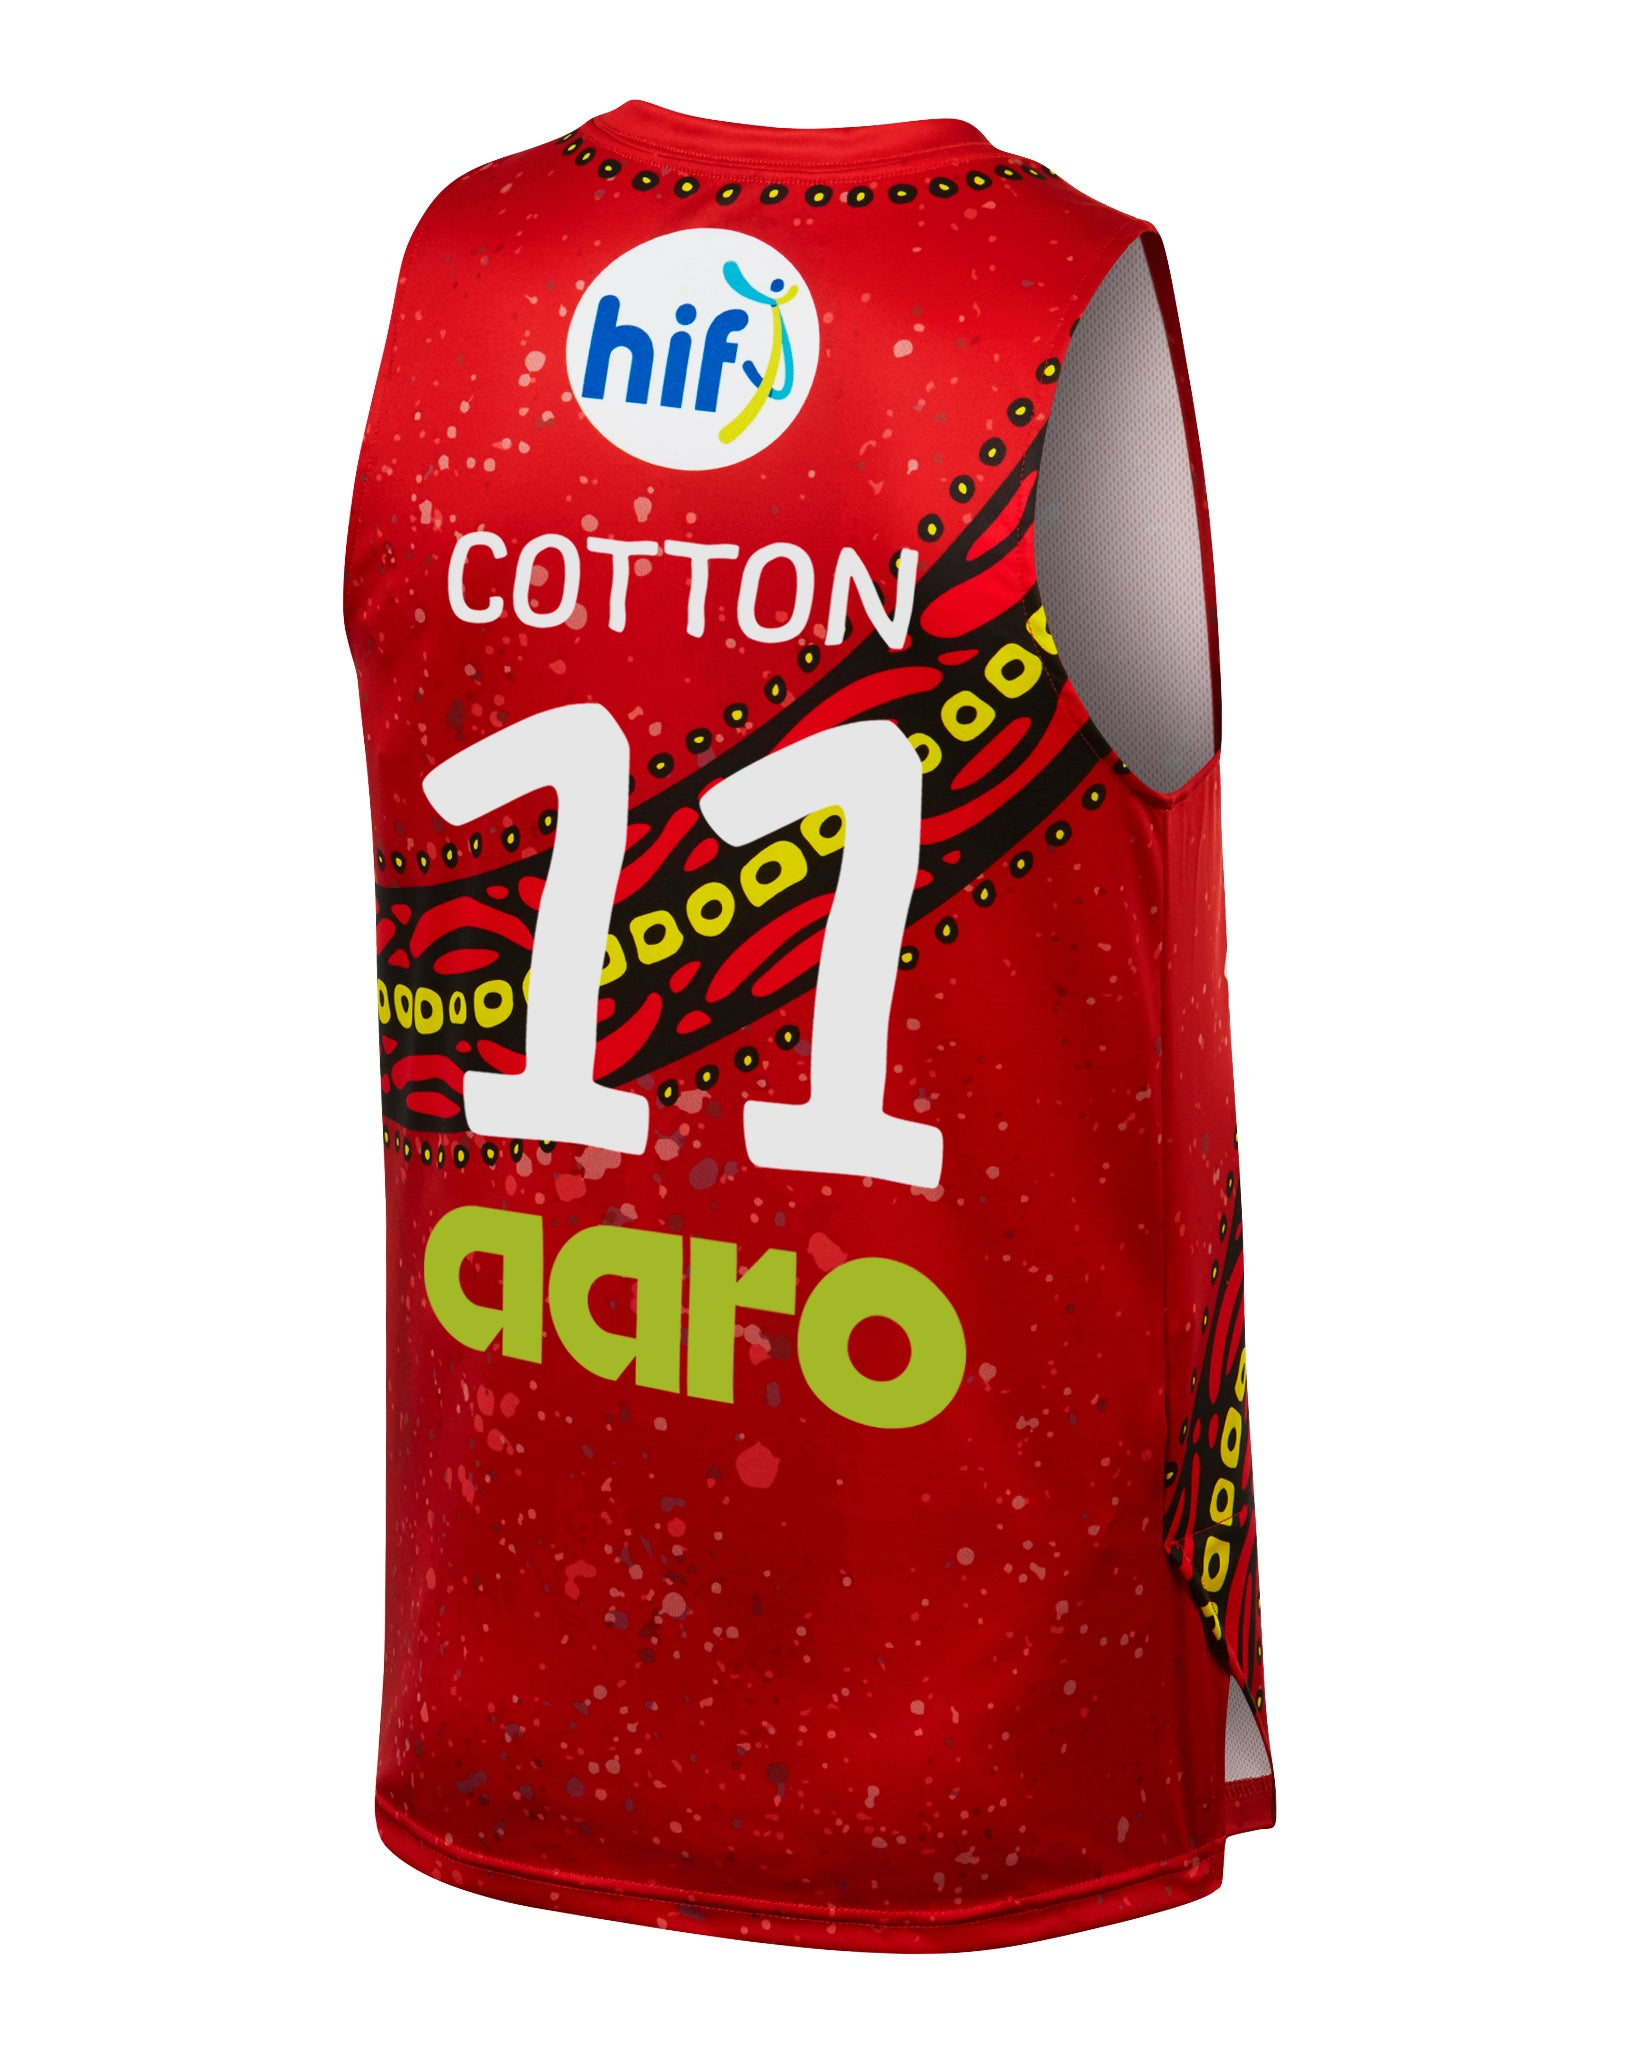 Perth Wildcats 19/20 Indigenous Jersey - Bryce Cotton